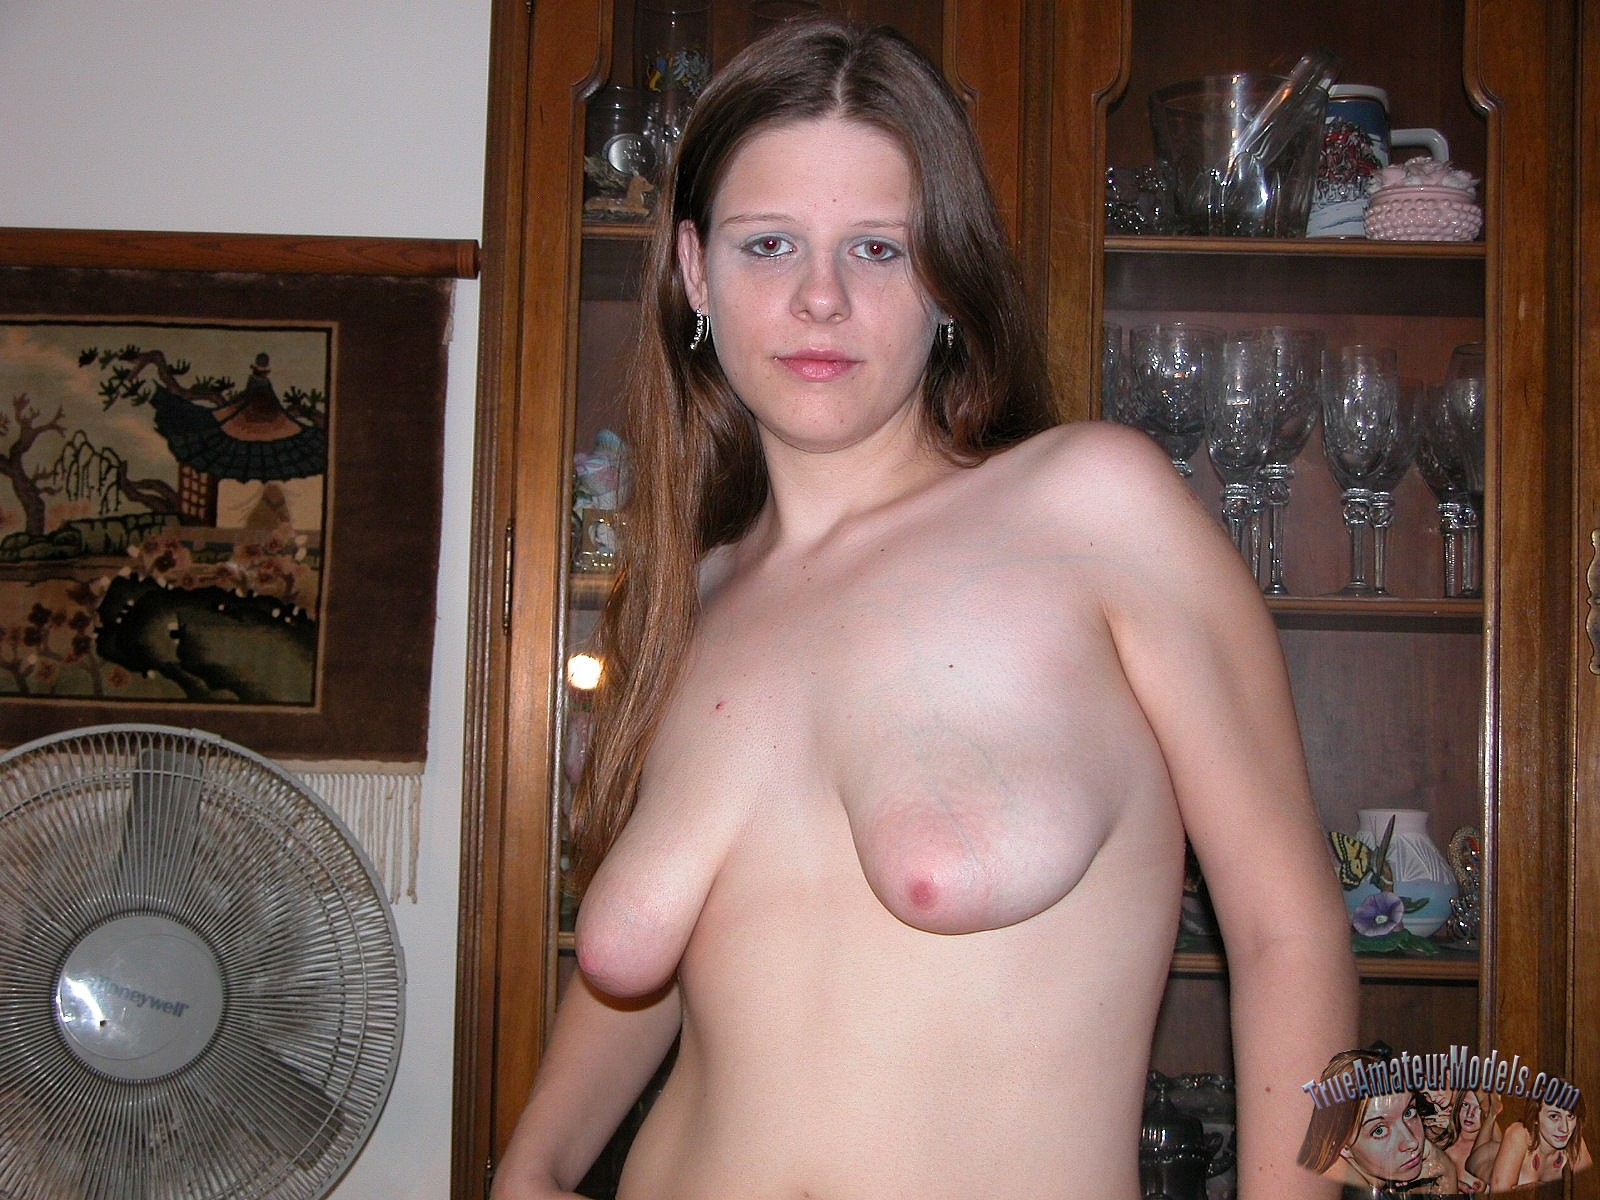 Saggy Tits On A Teen Cutie  Amateurpornphotos-8310